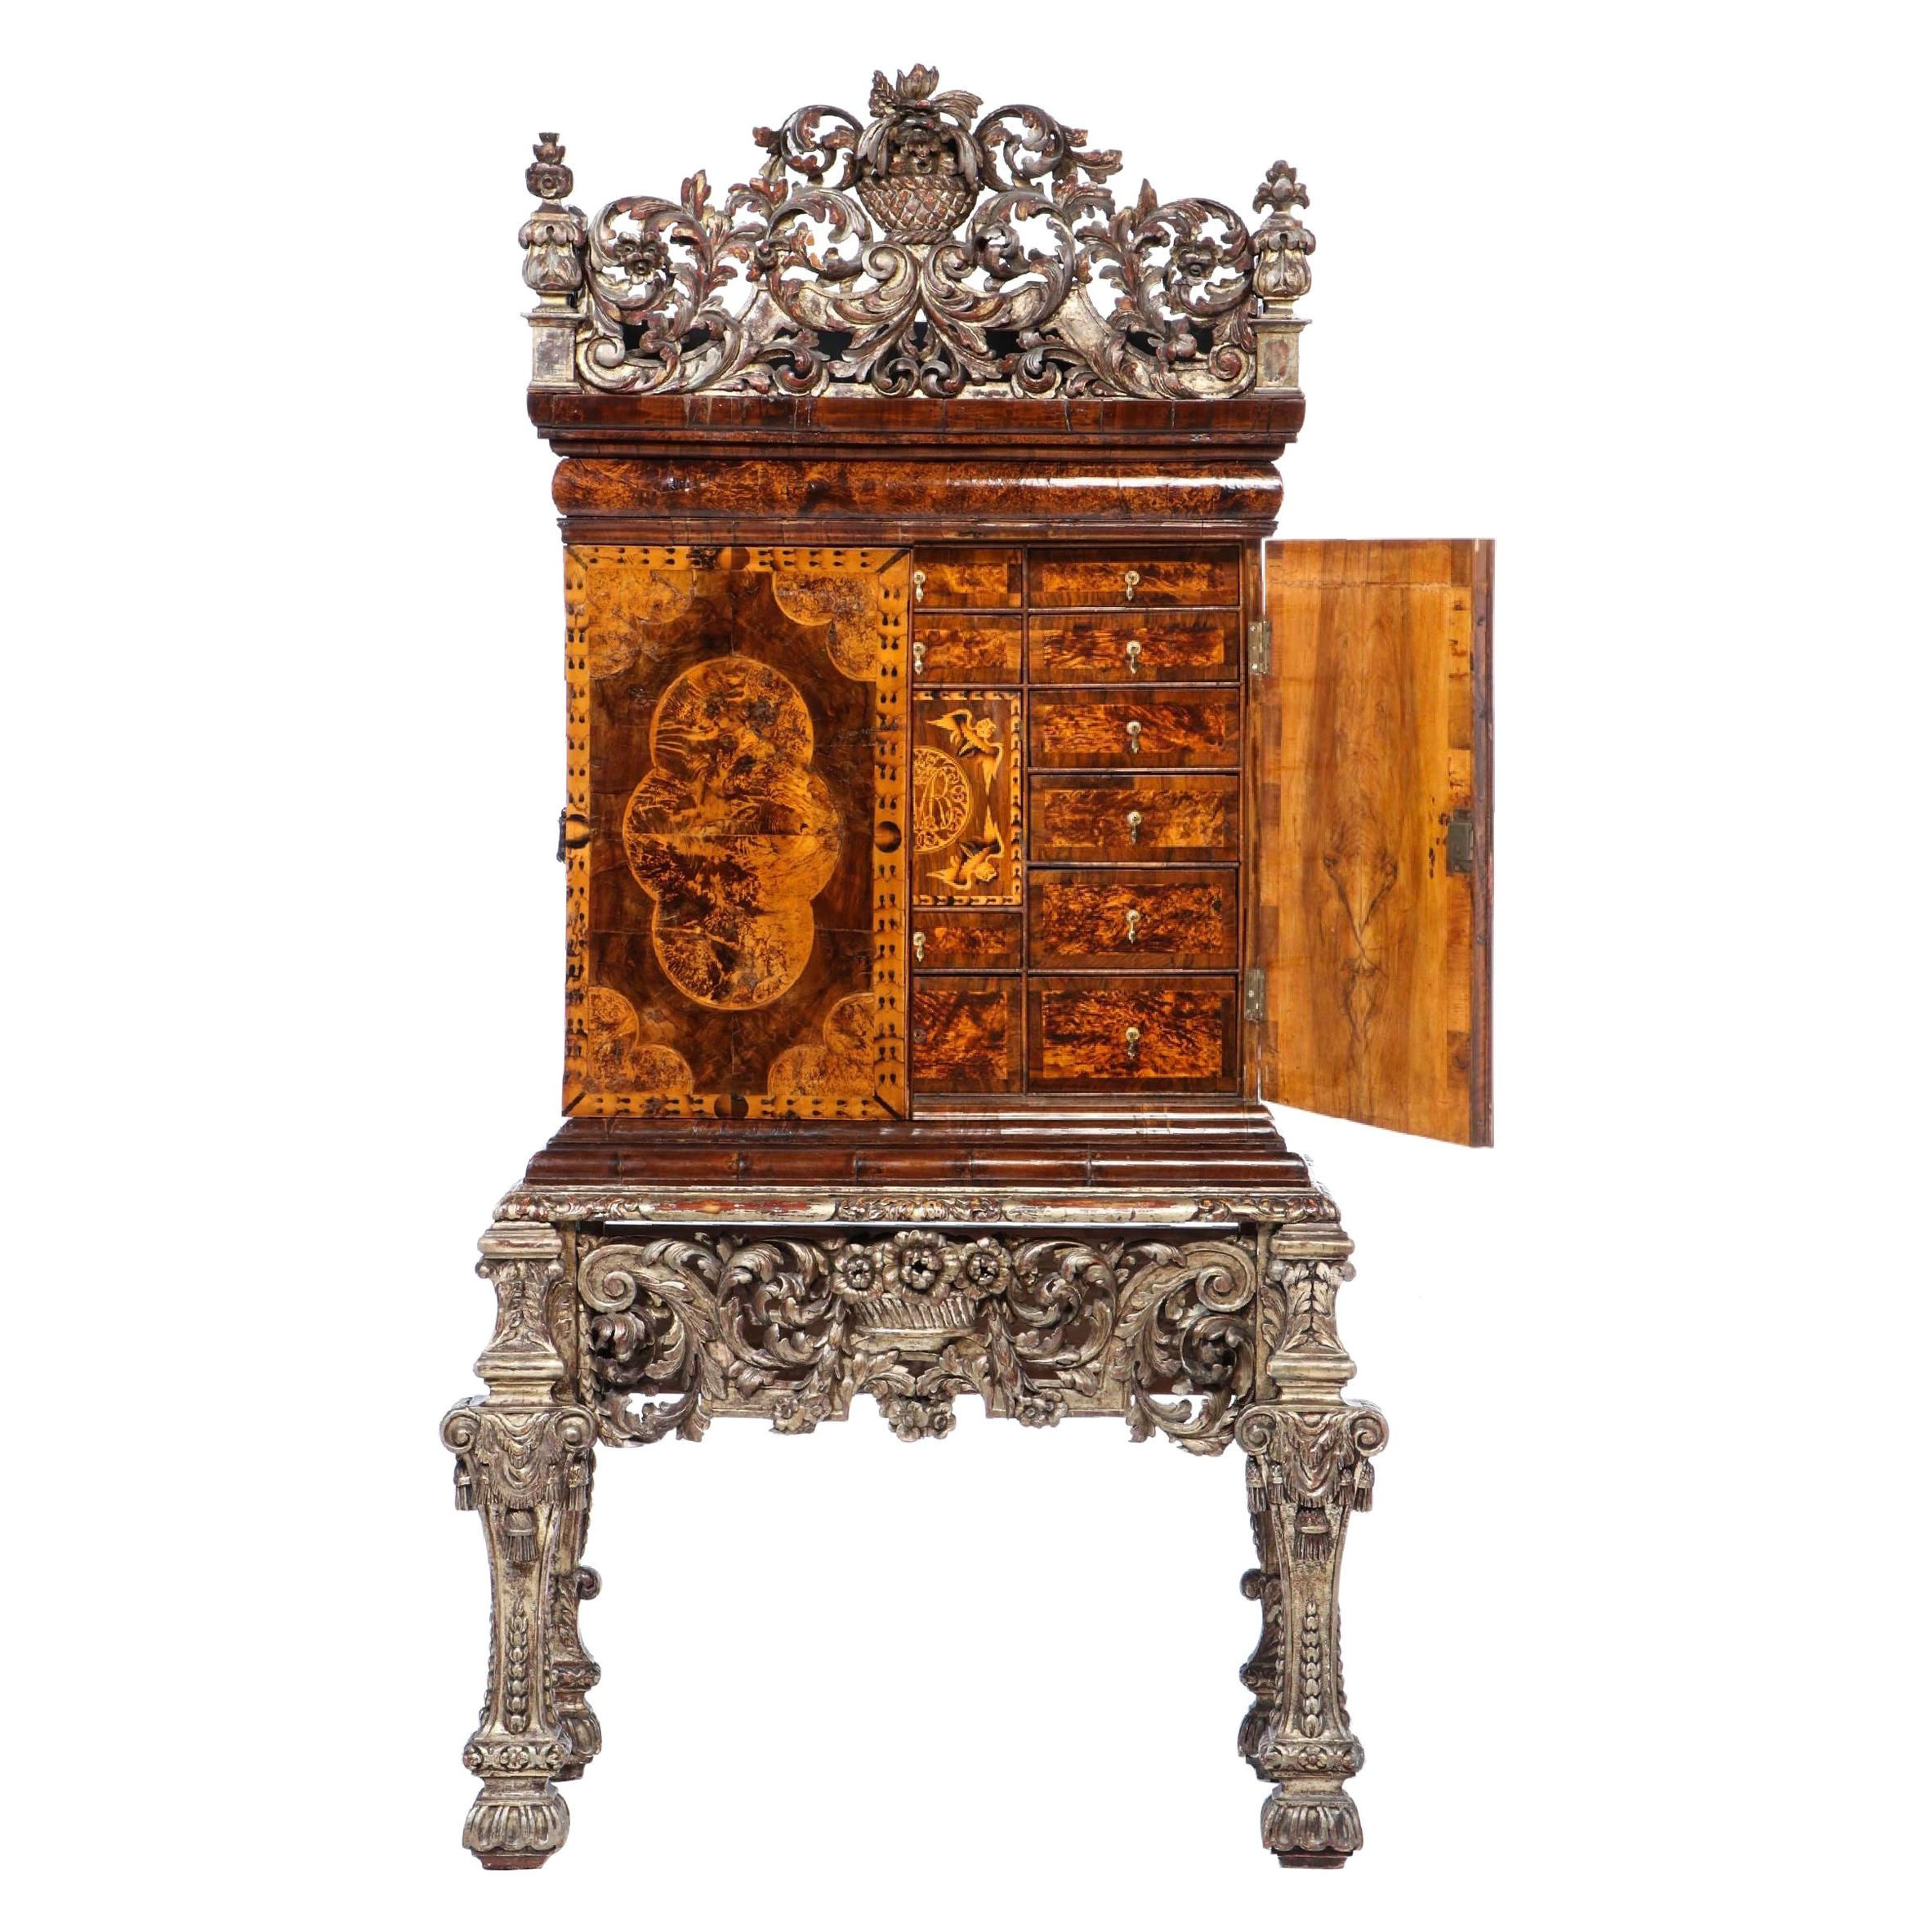 Charles II Commodes and Chests of Drawers